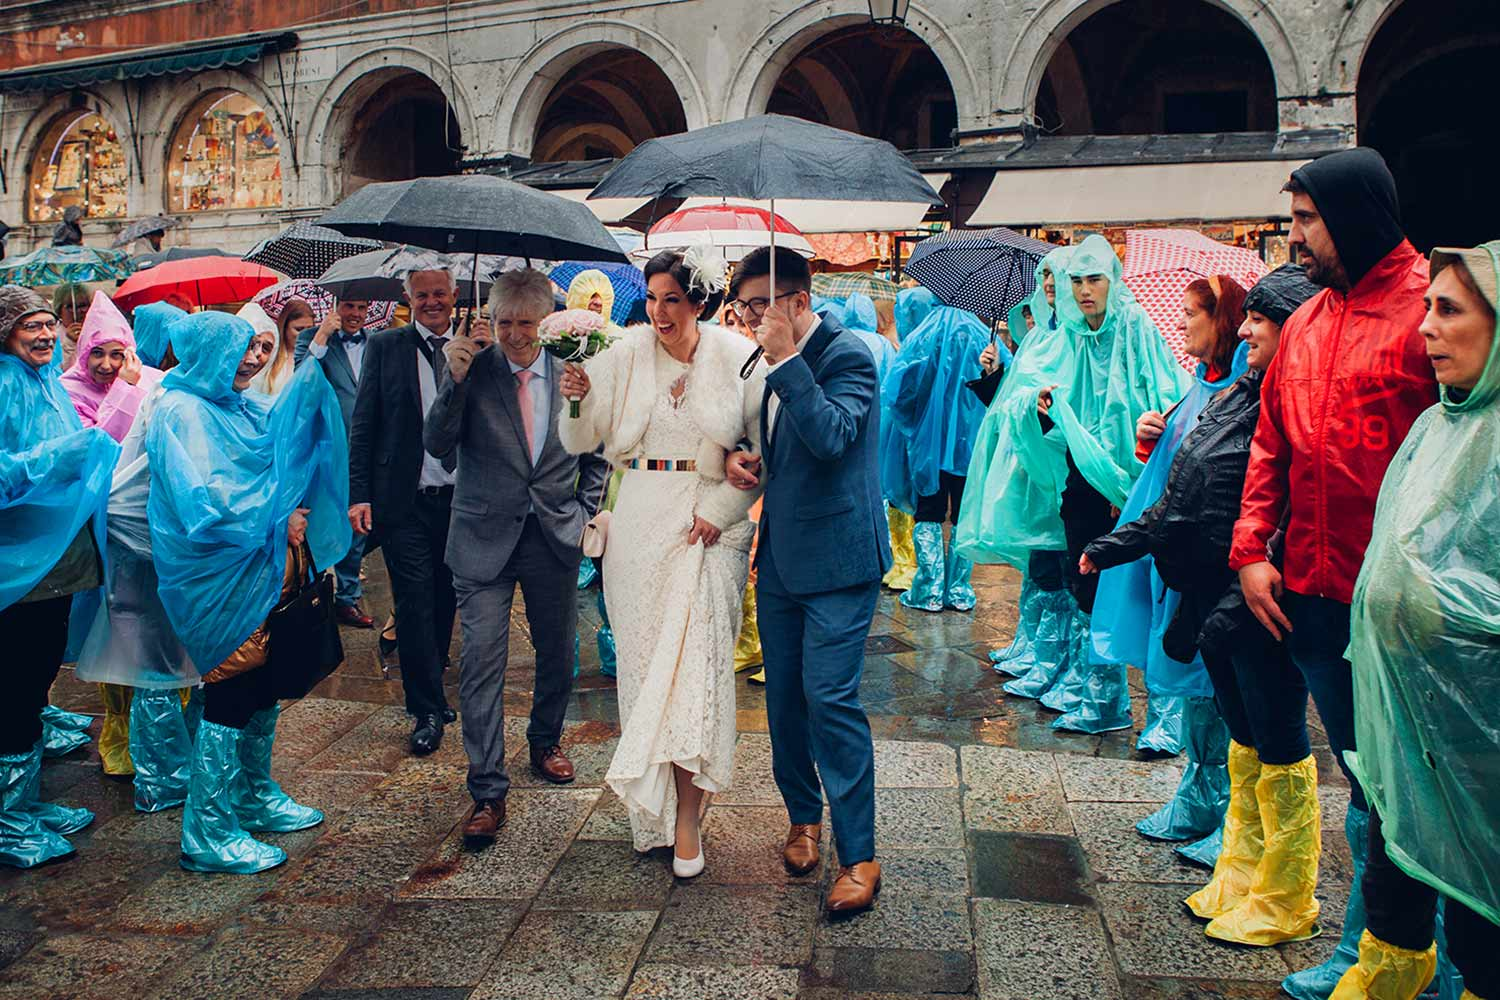 Wedding in Venice in the rain